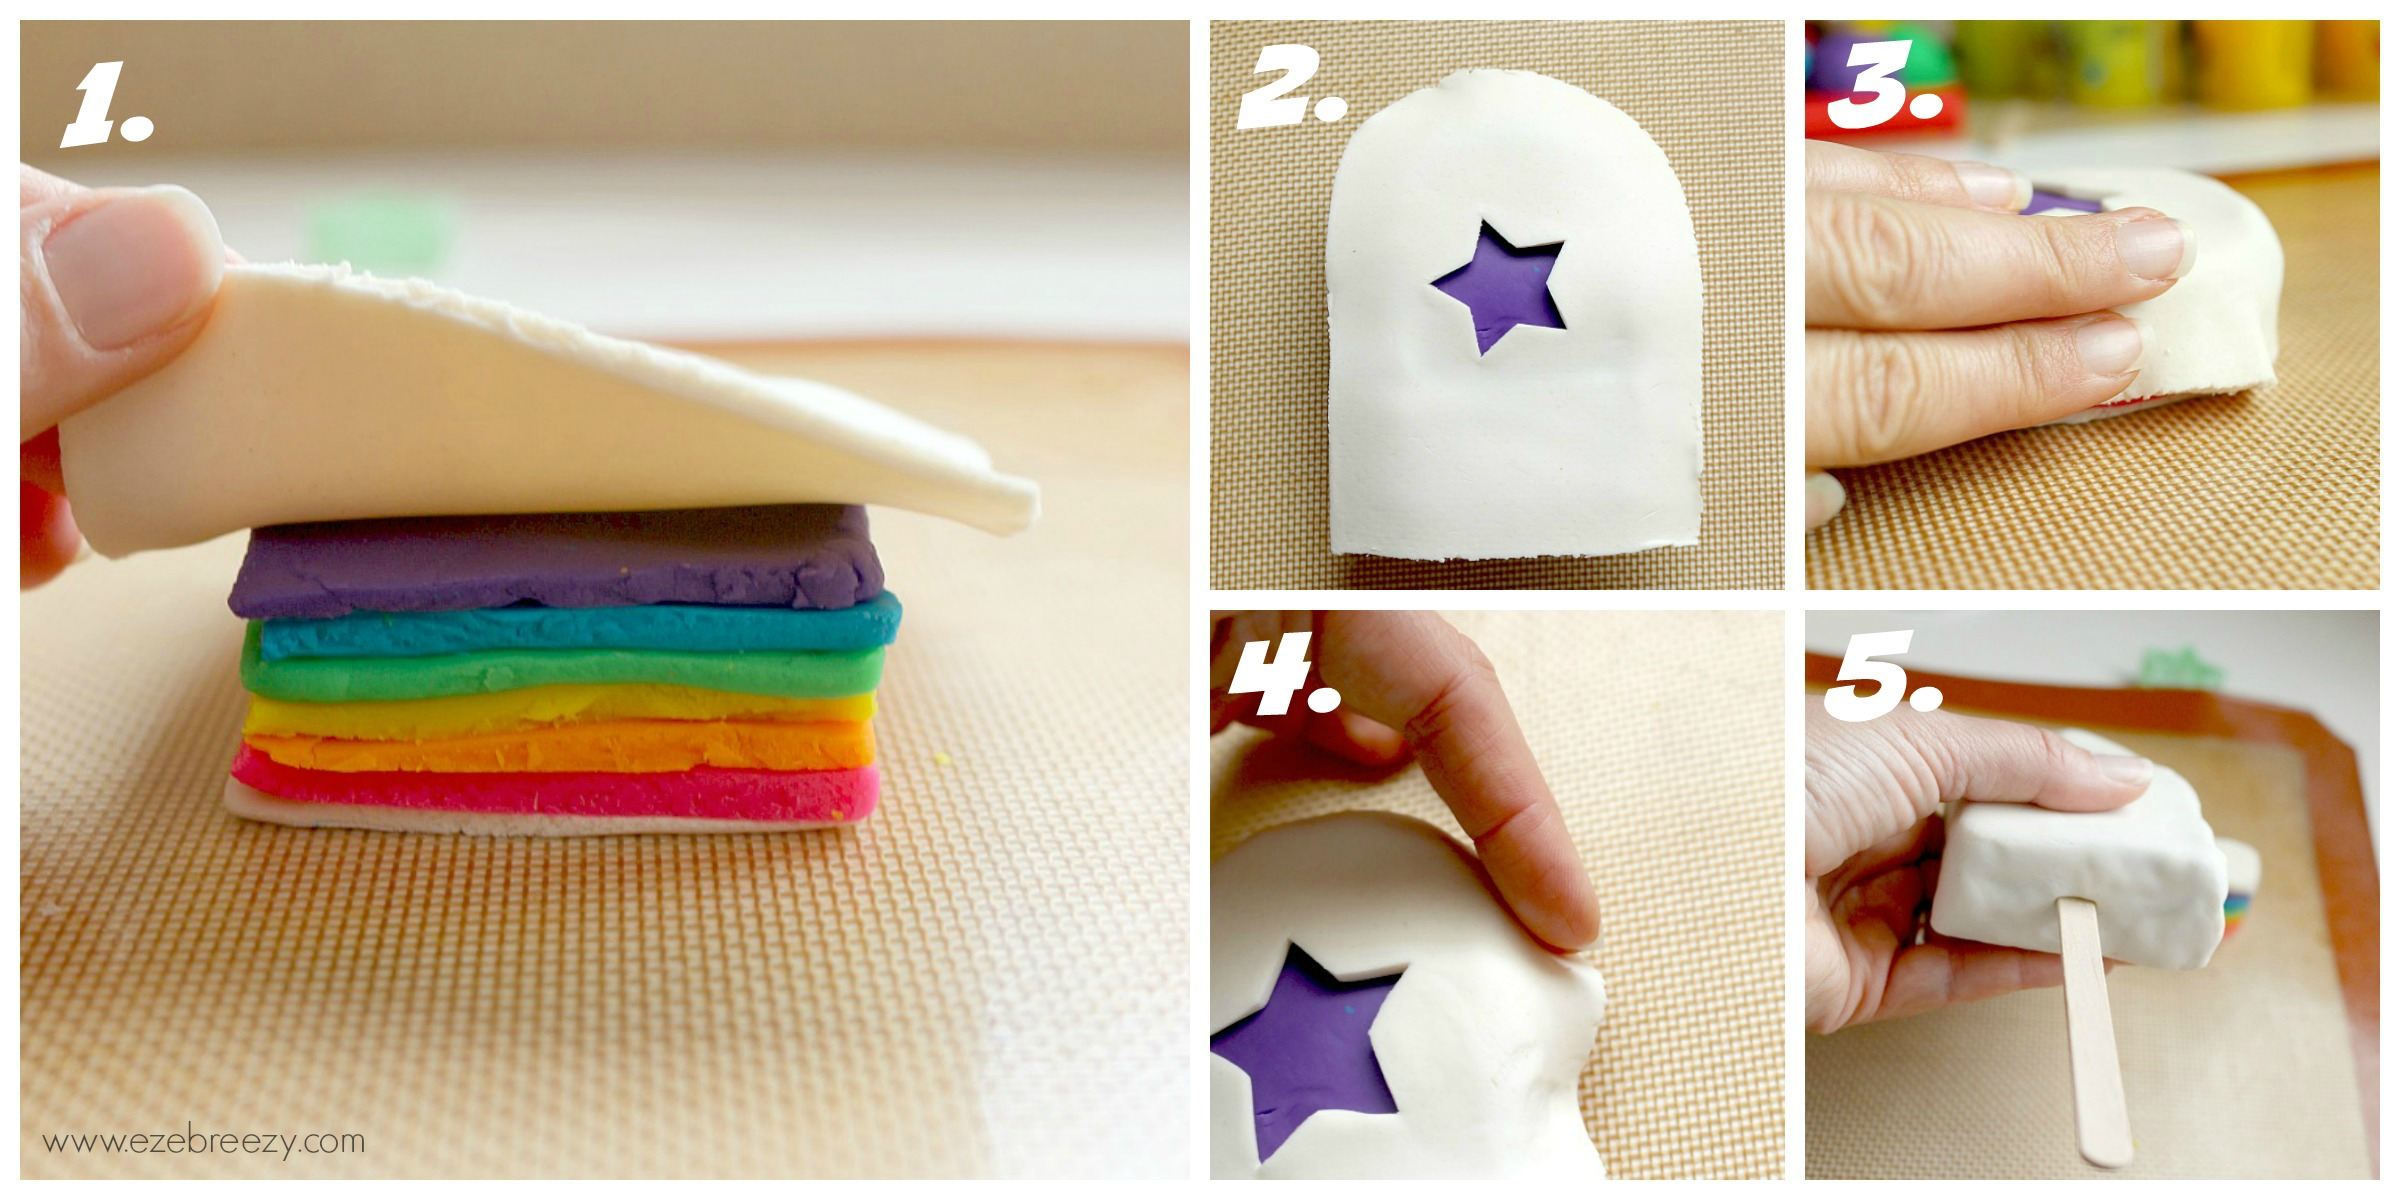 PLAY DOUGH POPSICLE - The perfect play dough activity for kids! Use different color play dough, add fun decorations to the outside....The popsicle possibilities are endless! | www.ezebreezy.com